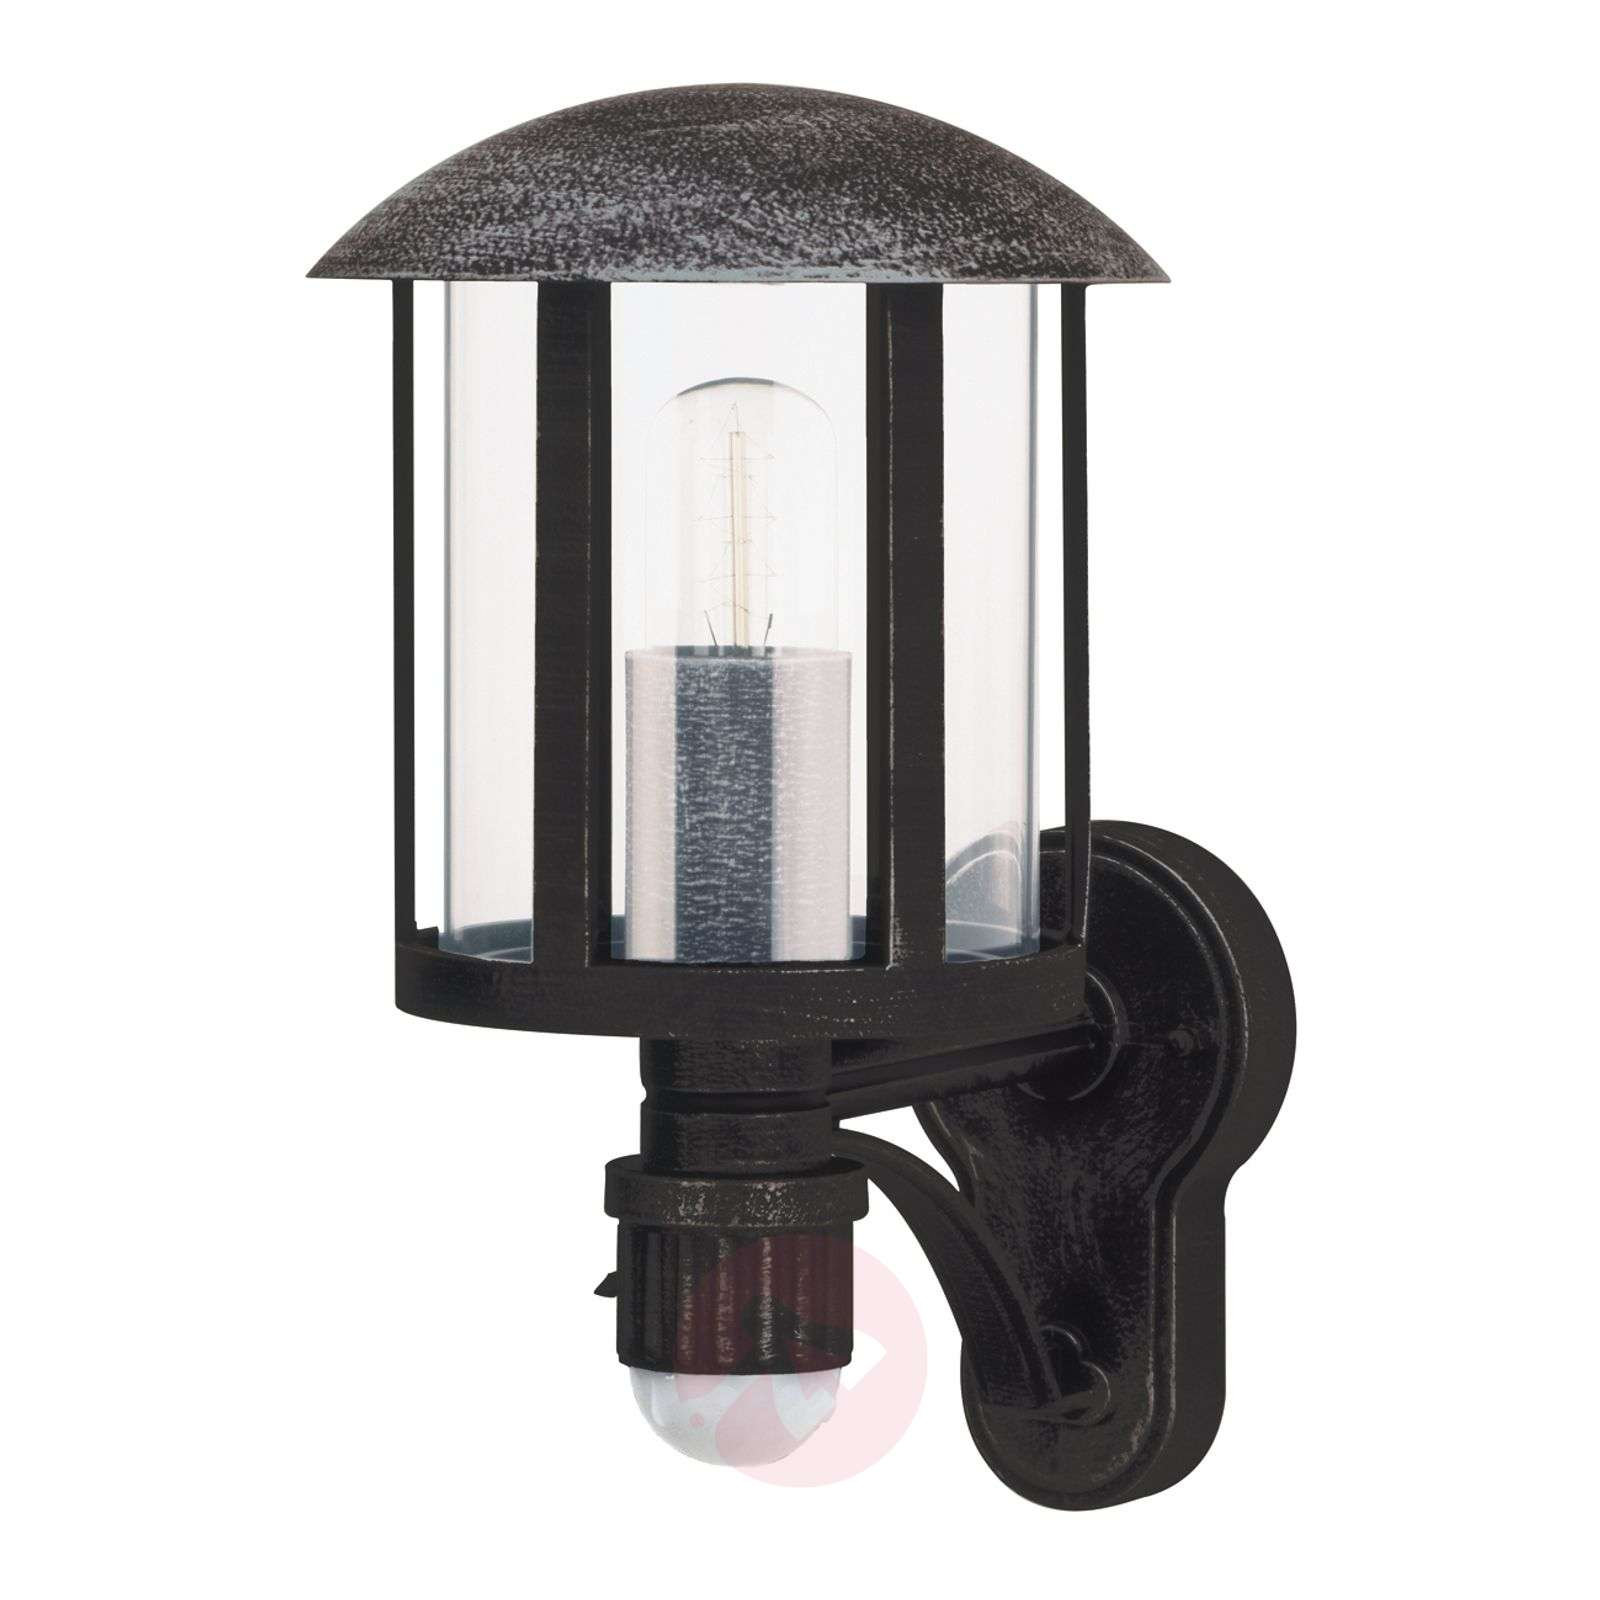 Genefe outdoor wall light in country house style-4000103X-02